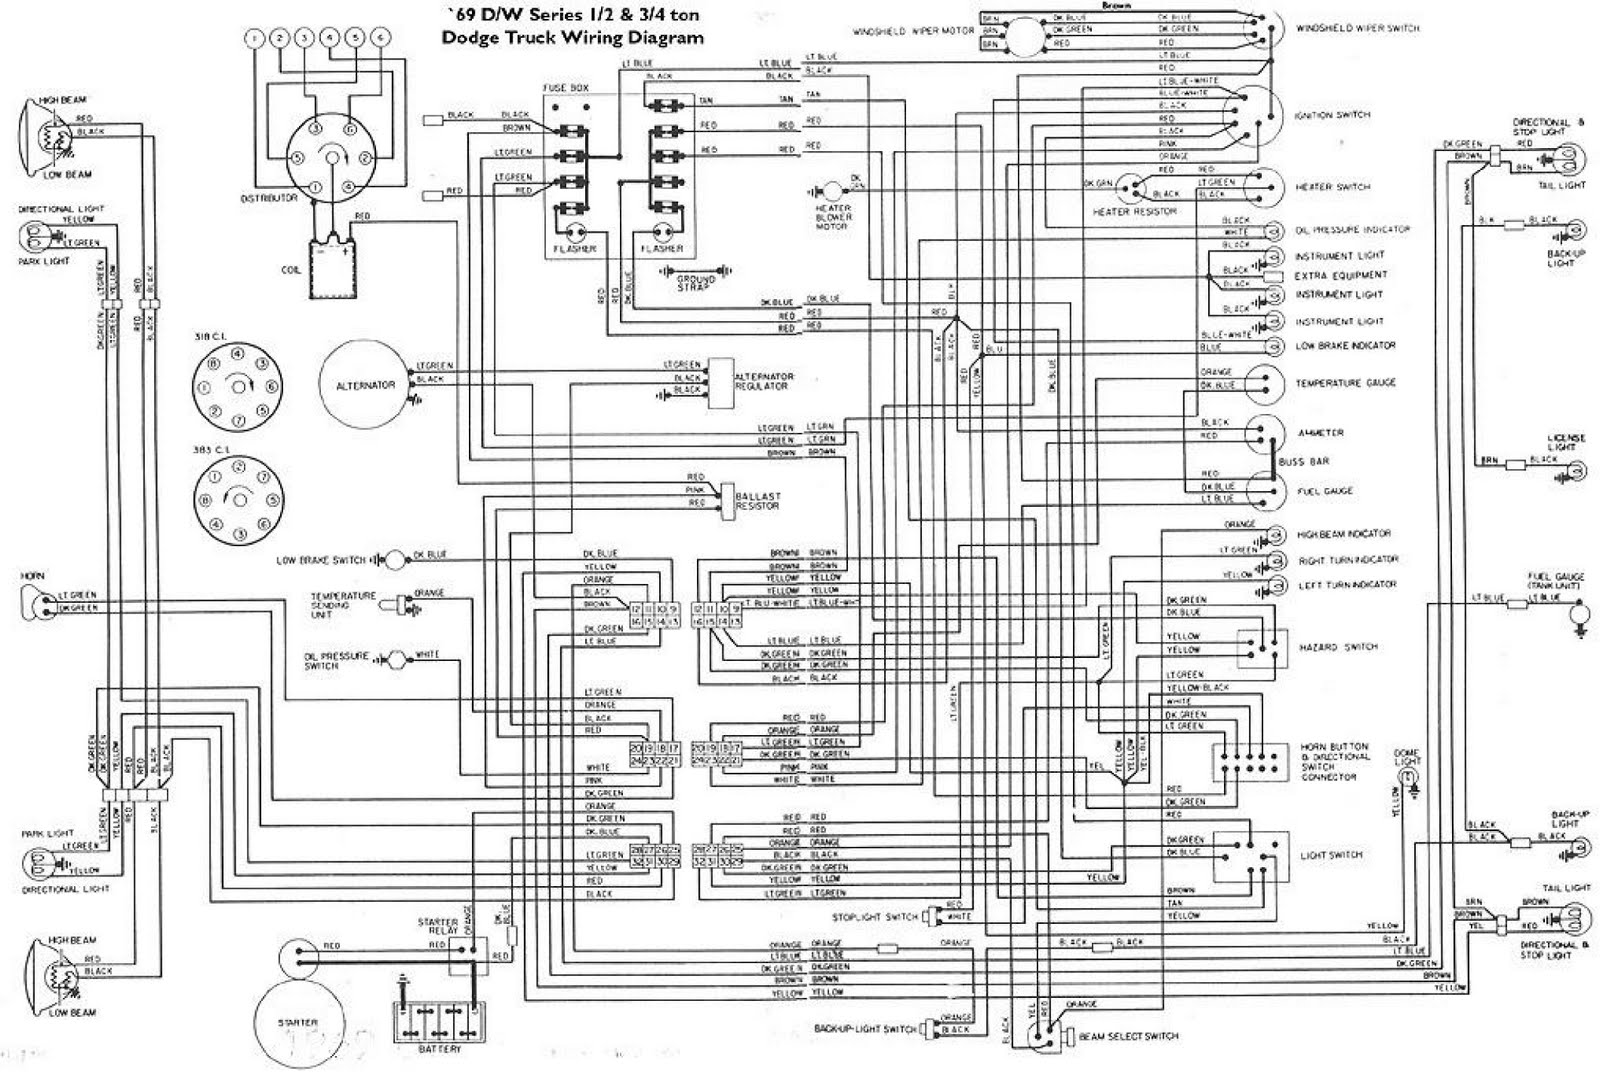 s d w series dodge truck wiring diagram schematic wiring 1969 s d w series dodge truck wiring diagram